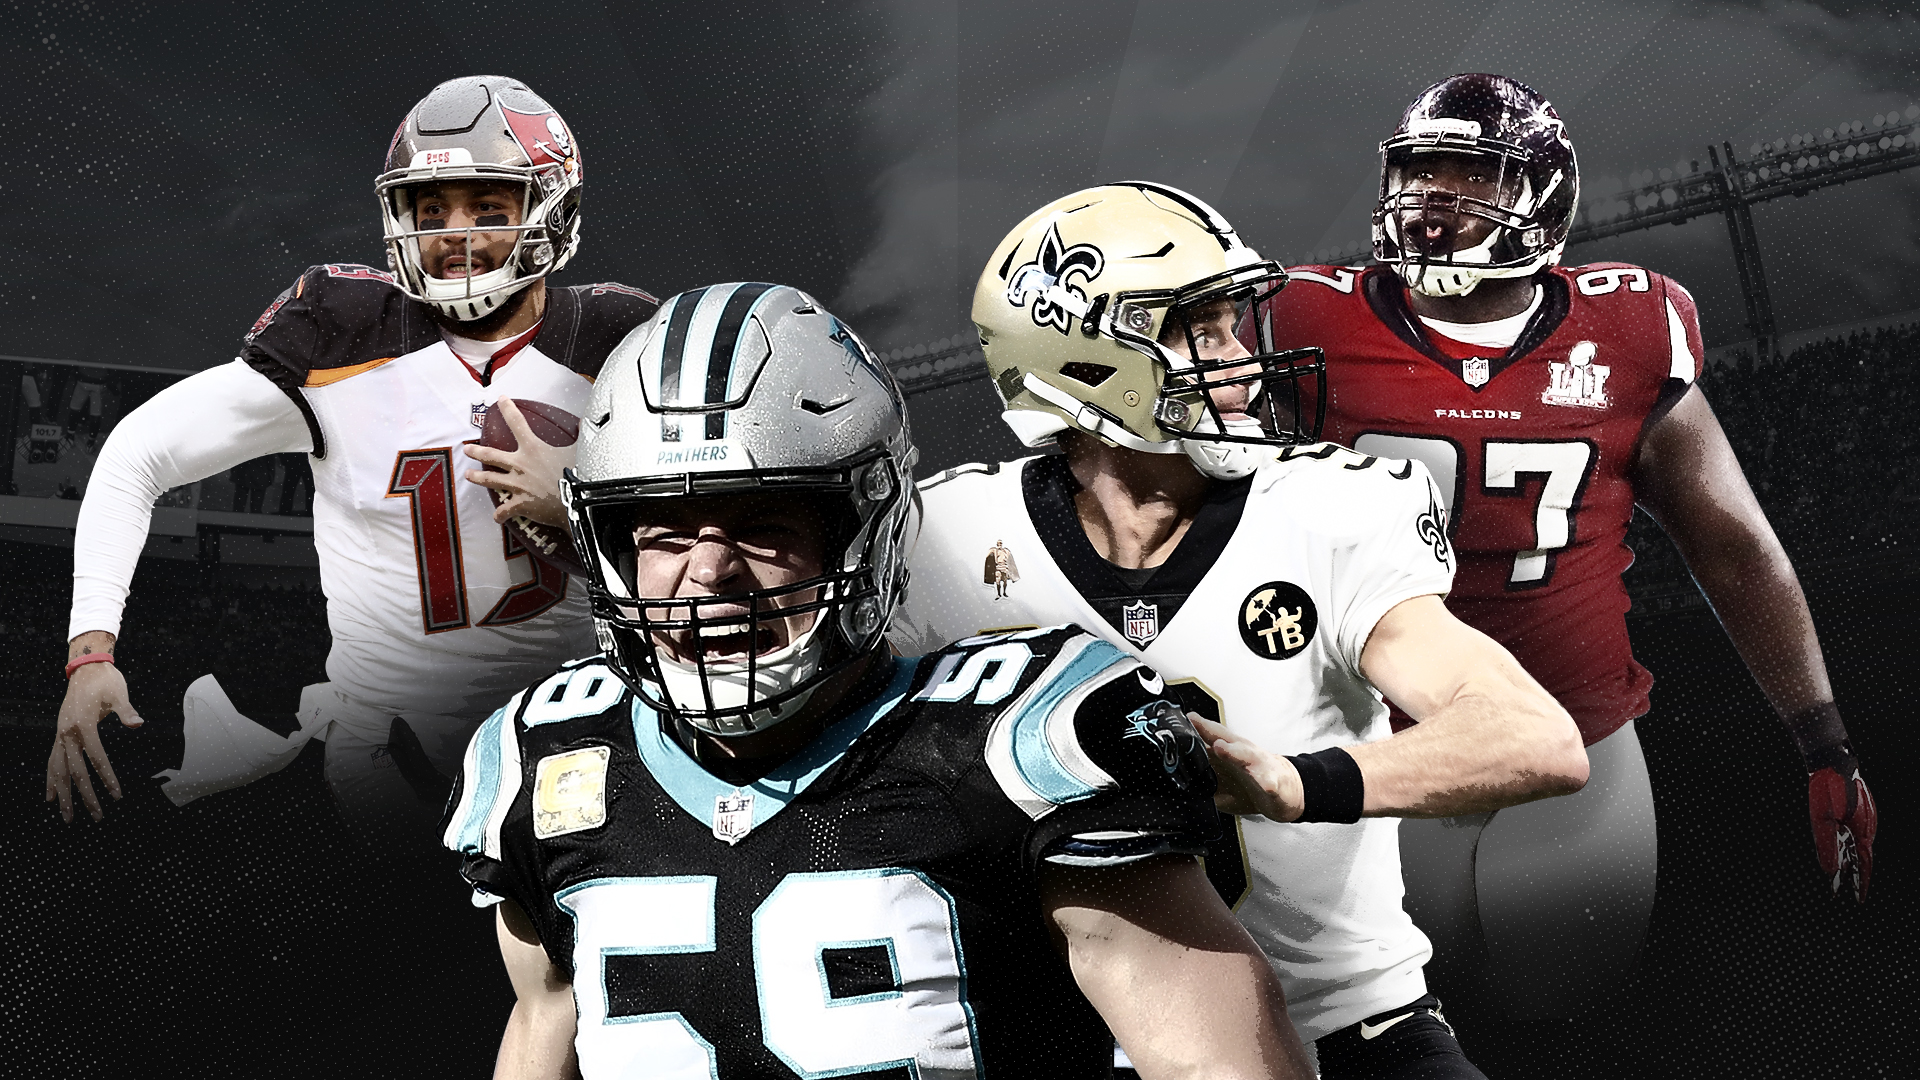 NFL Predictions Win-Loss Ratio NFC South League Saints Falcons Panthers Bucs